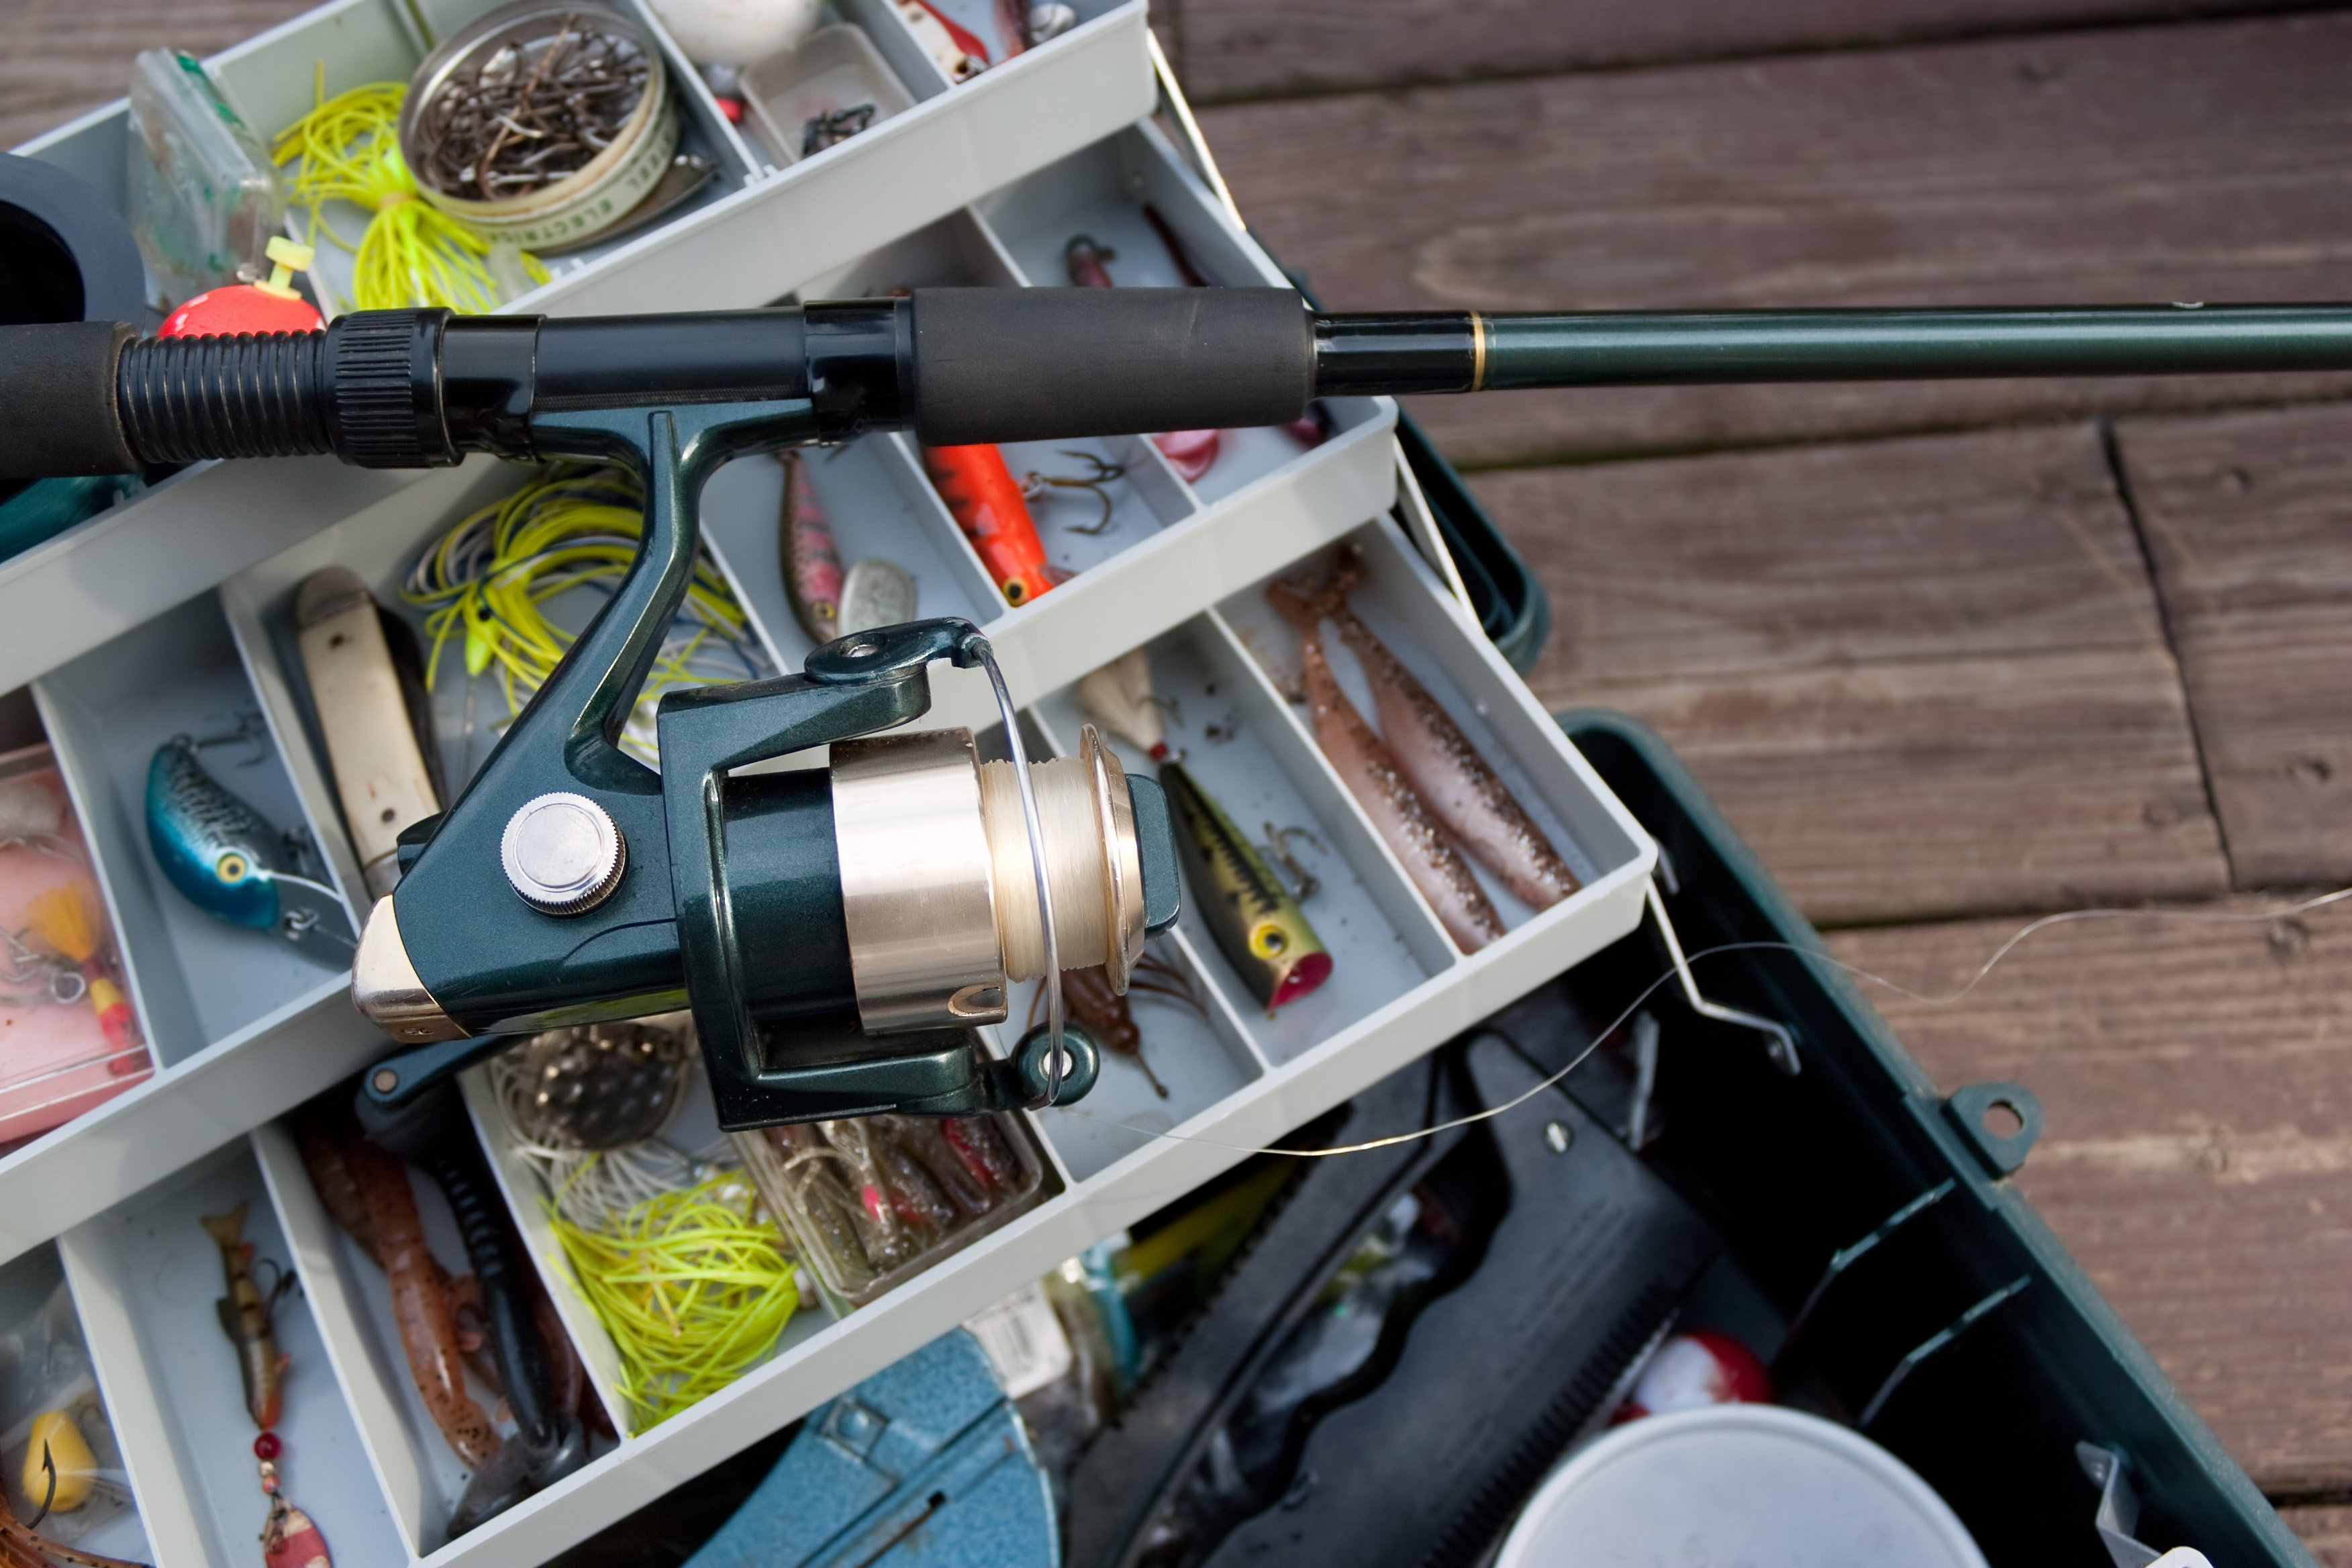 tackle box full of fishing gear